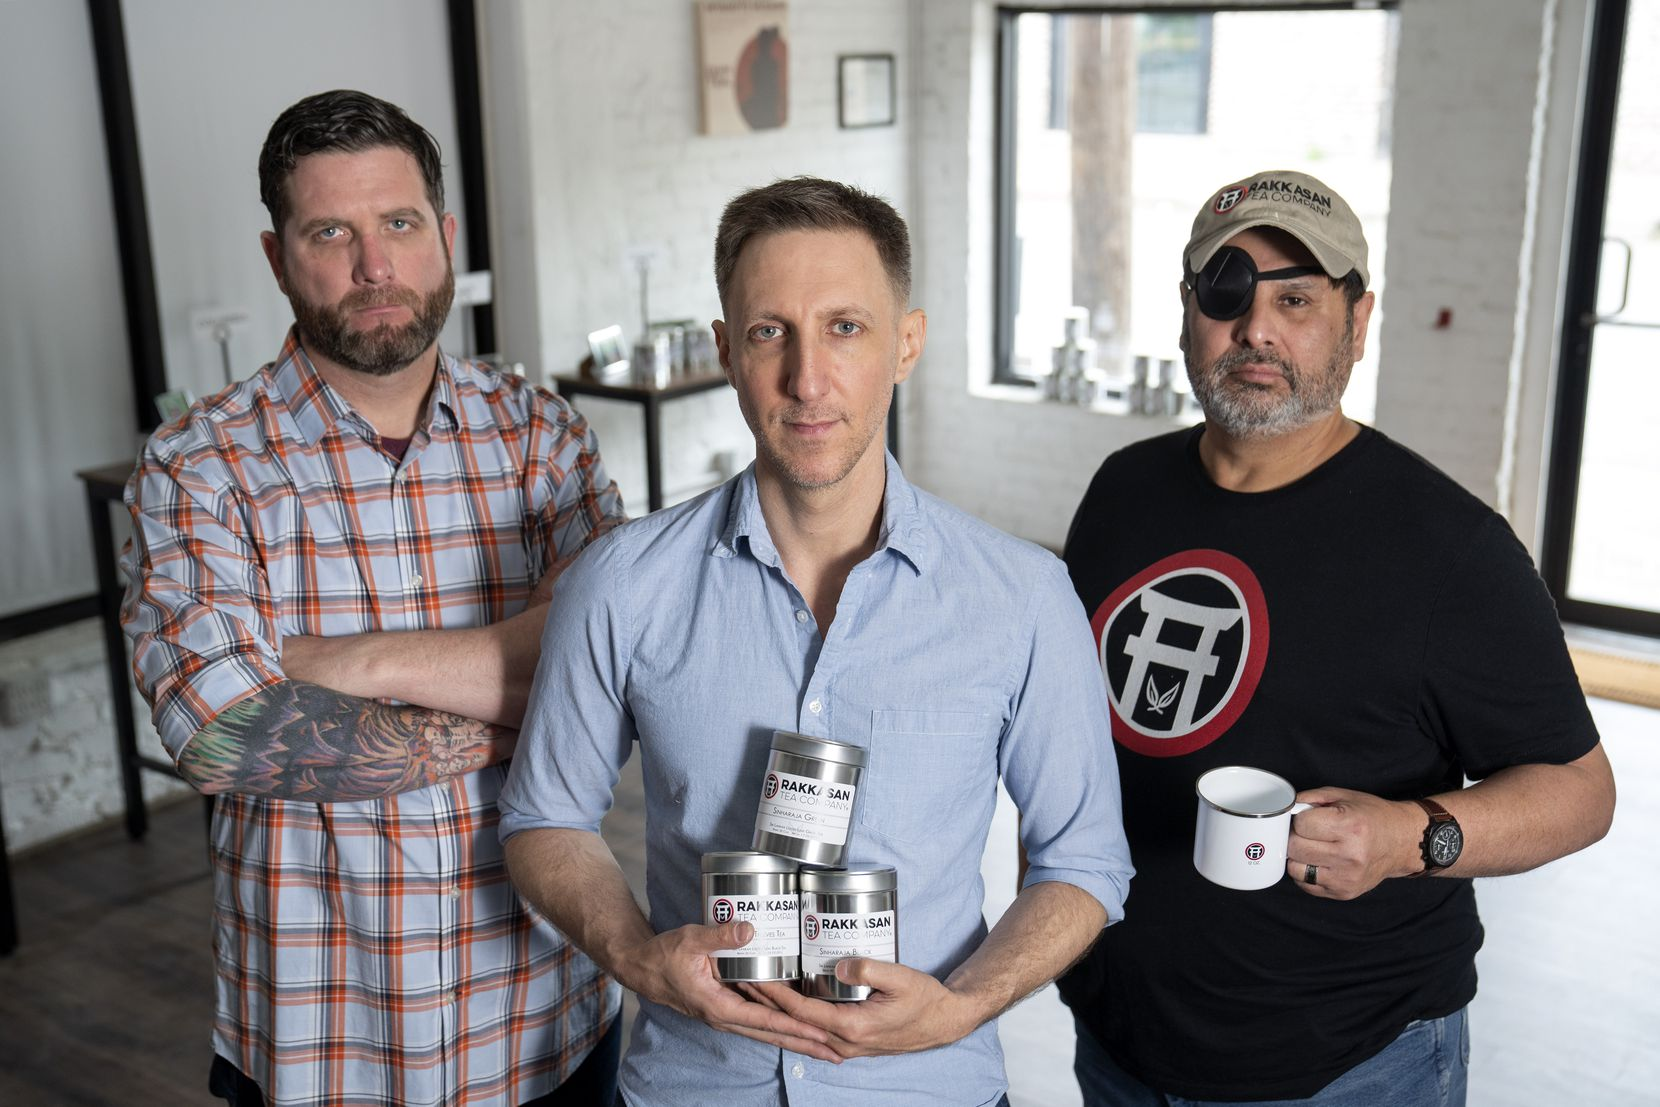 TK Kamauf, Brandon Friedman and Lance John, left to right, pose for portraits inside their new Rakkasan Tea brick-and-mortar store in Dallas.